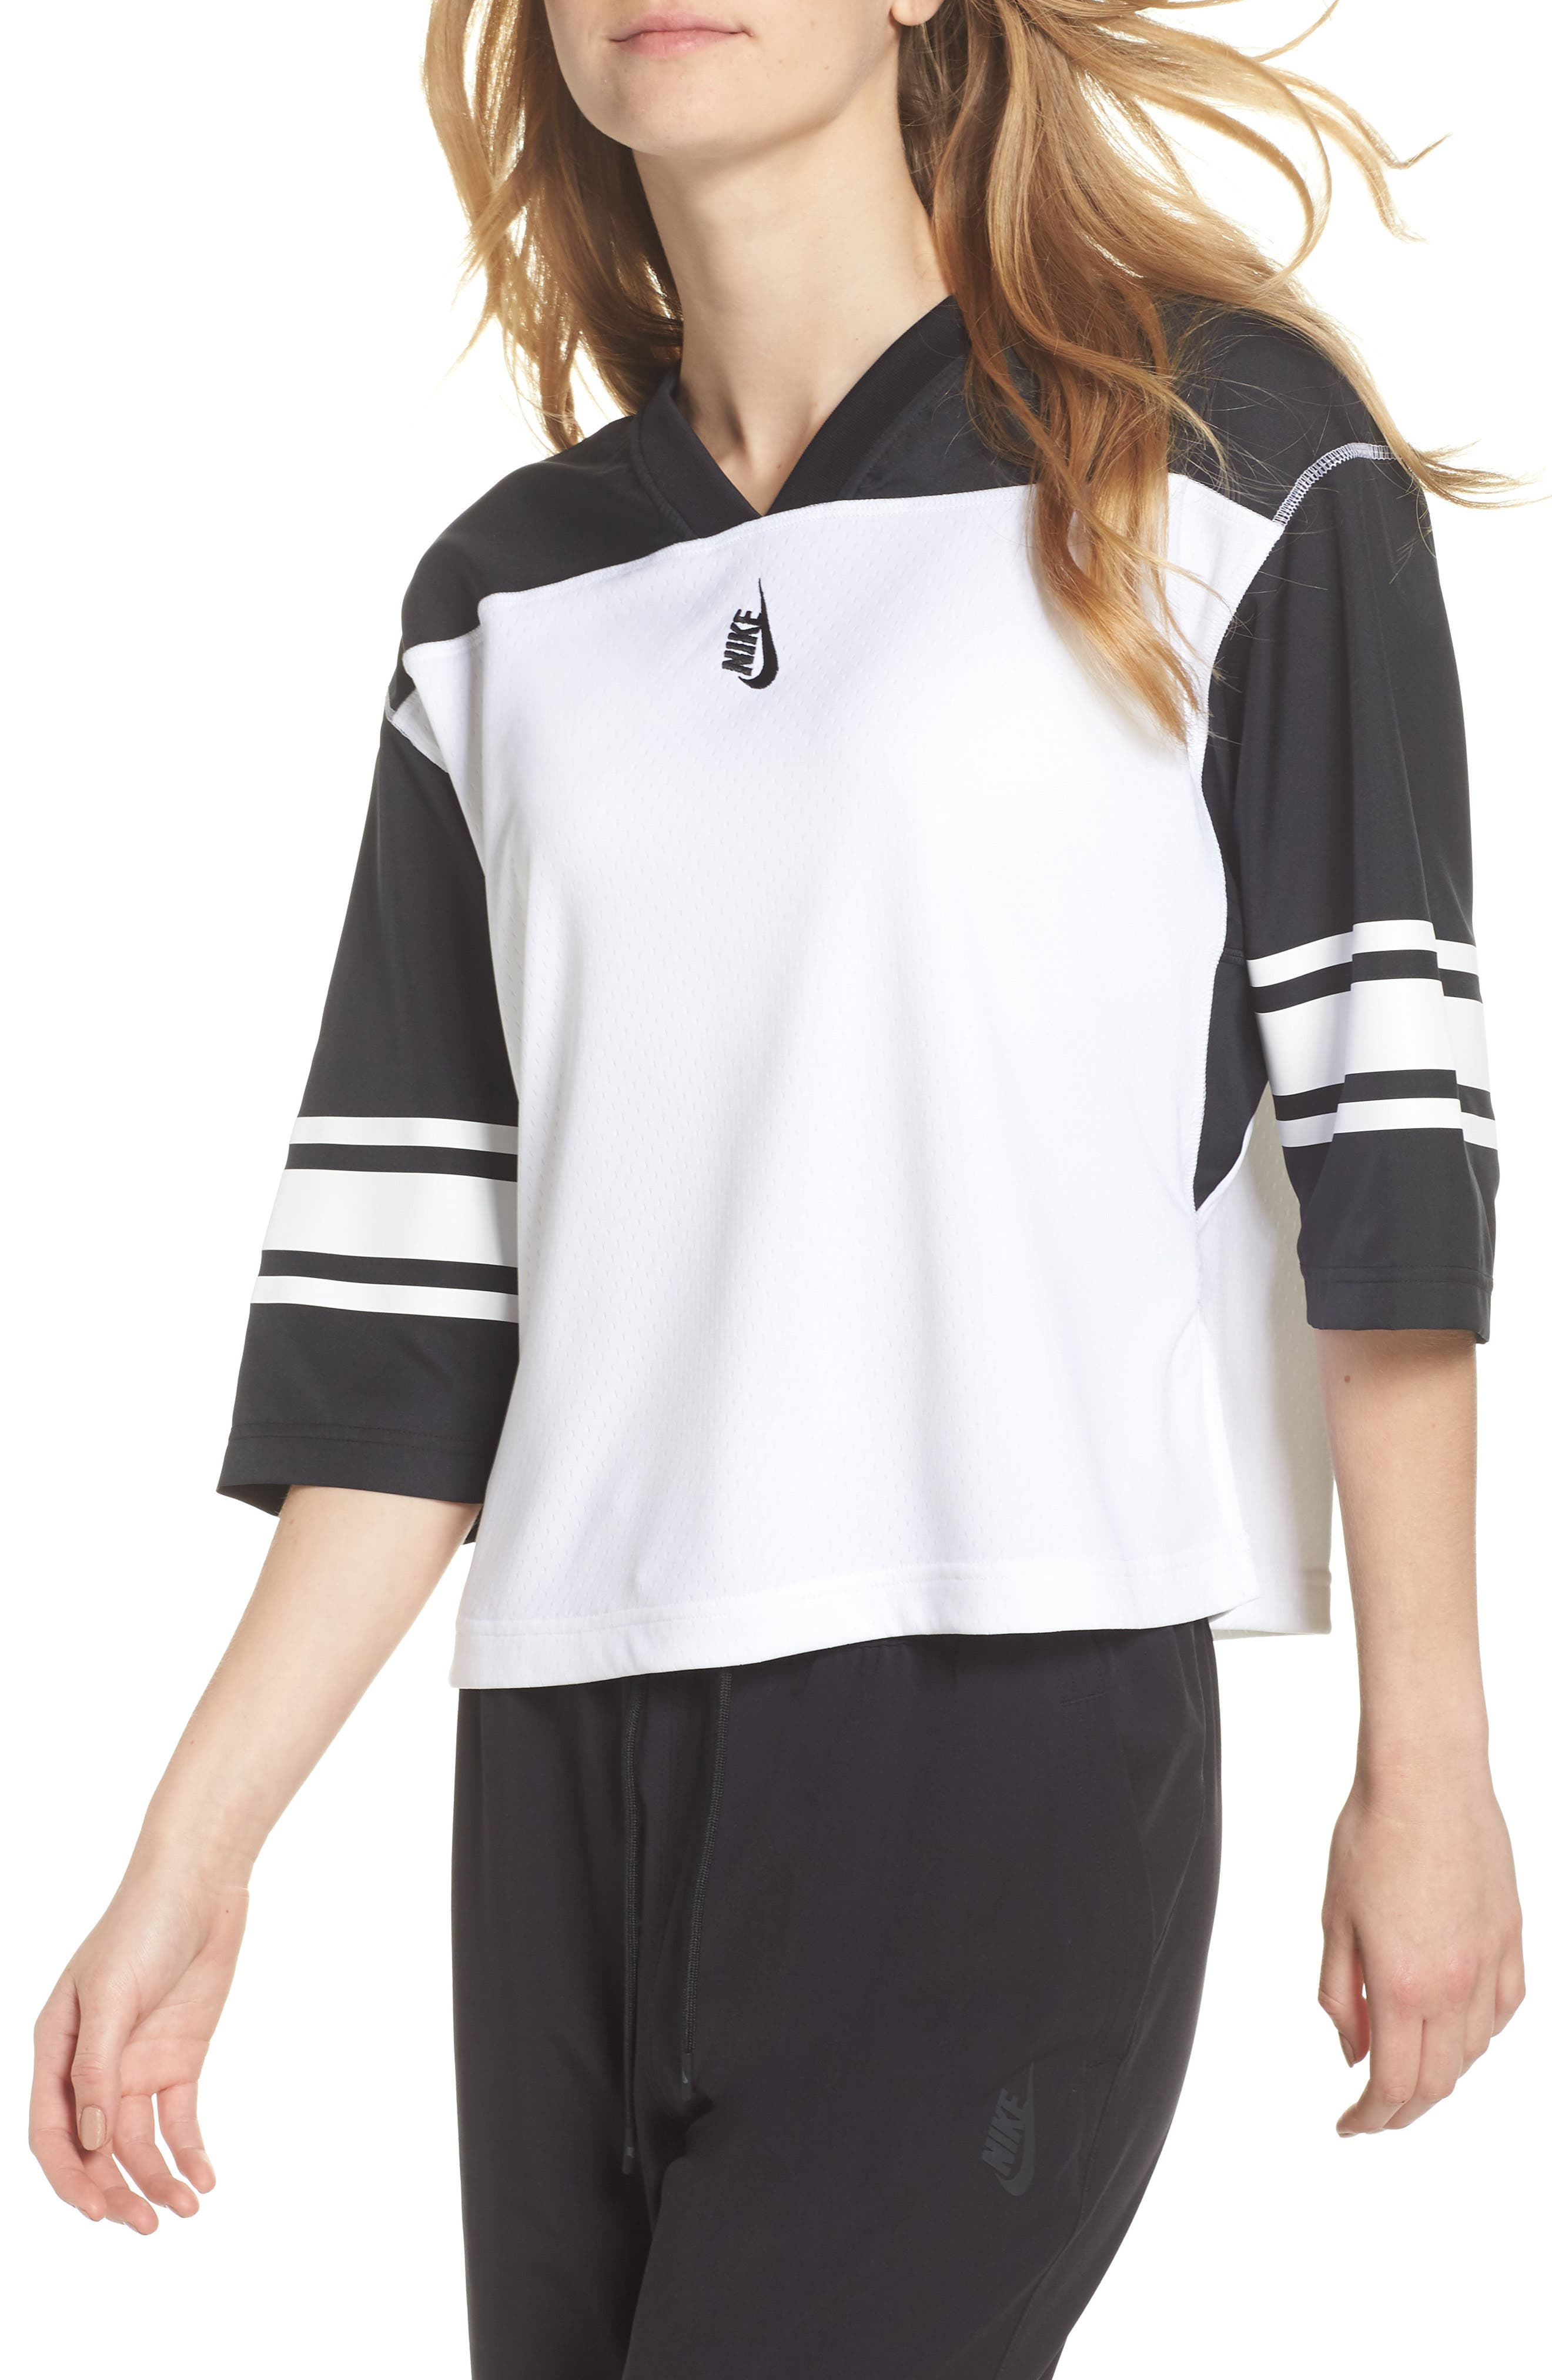 NikeLab Collection Football Top,                             Main thumbnail 1, color,                             BLACK/ WHITE/ BLACK